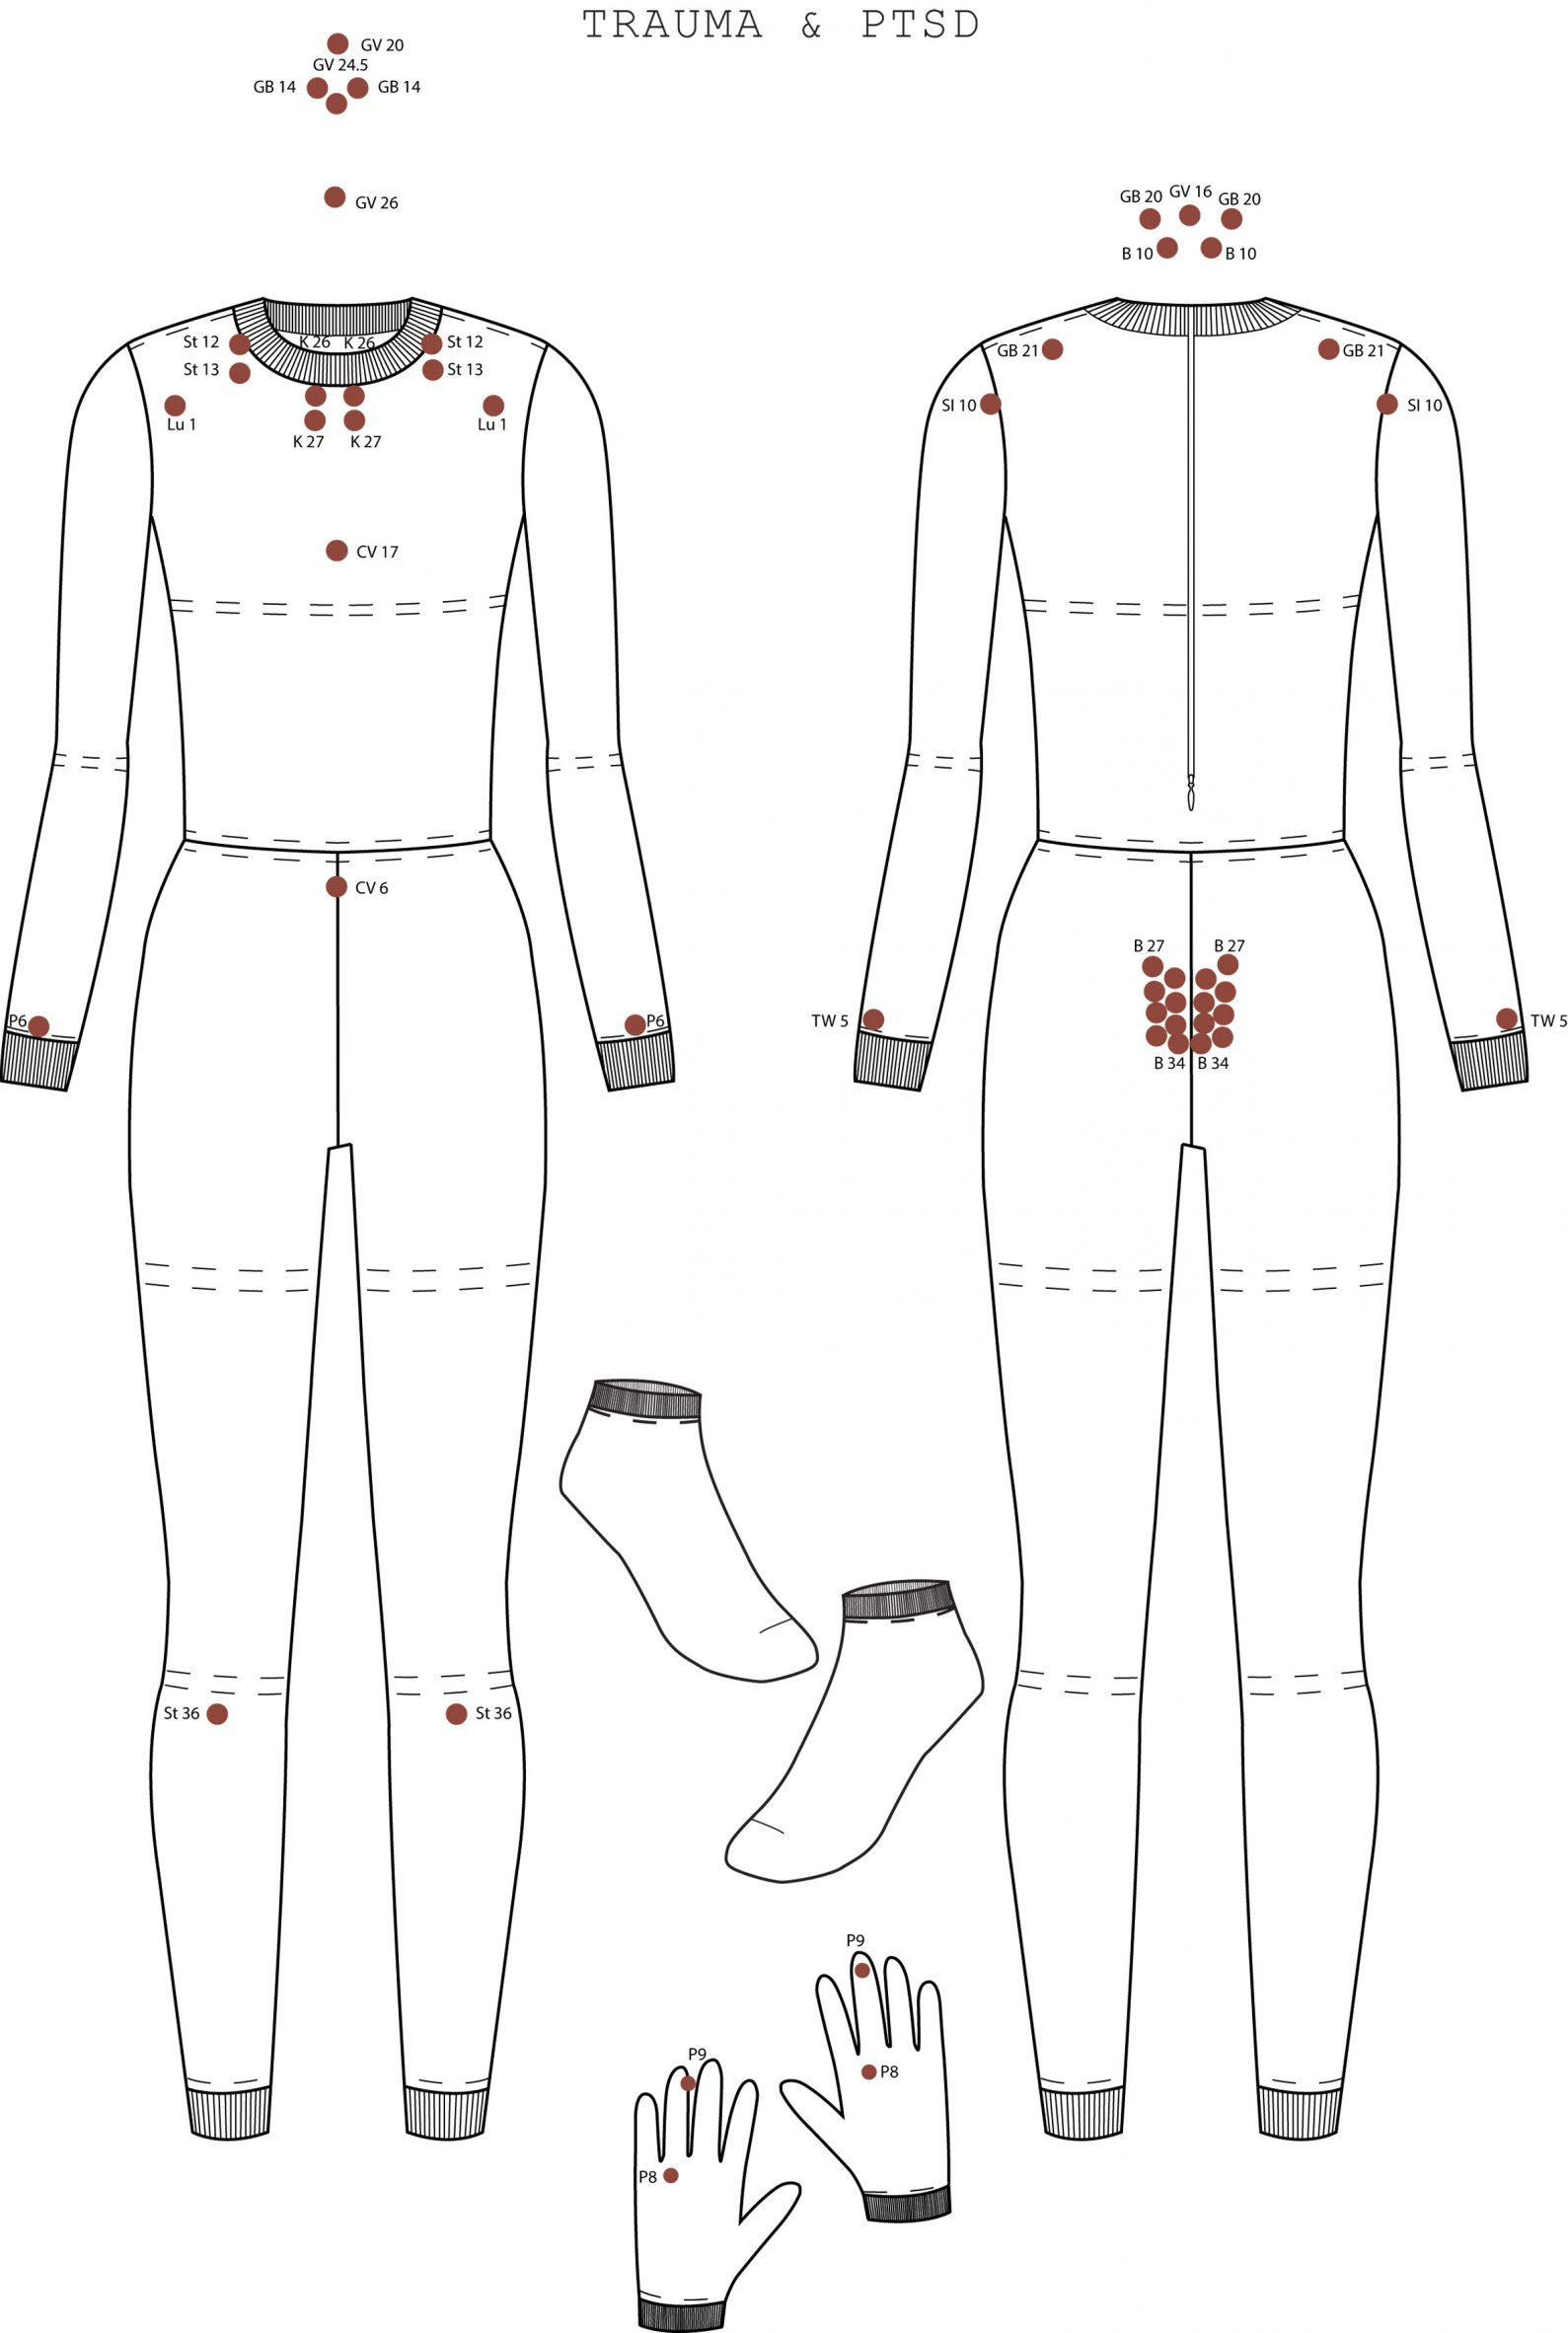 Illustration showing acupressure points around the neck, wrists, knees, chest, stomach and rear